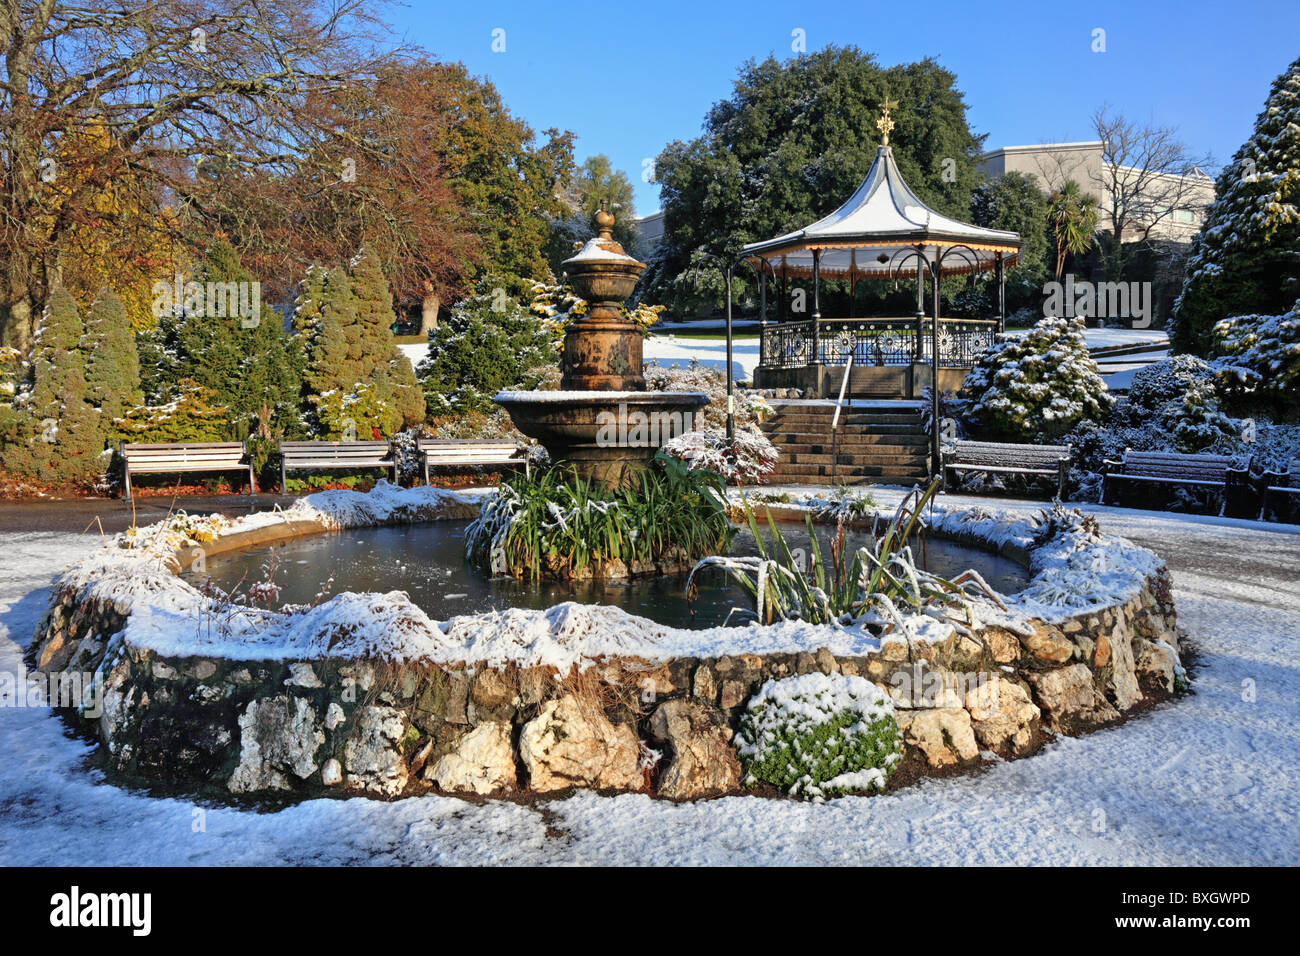 The Bandstand and water fountain in Truro's Victoria Gardens - Stock Image